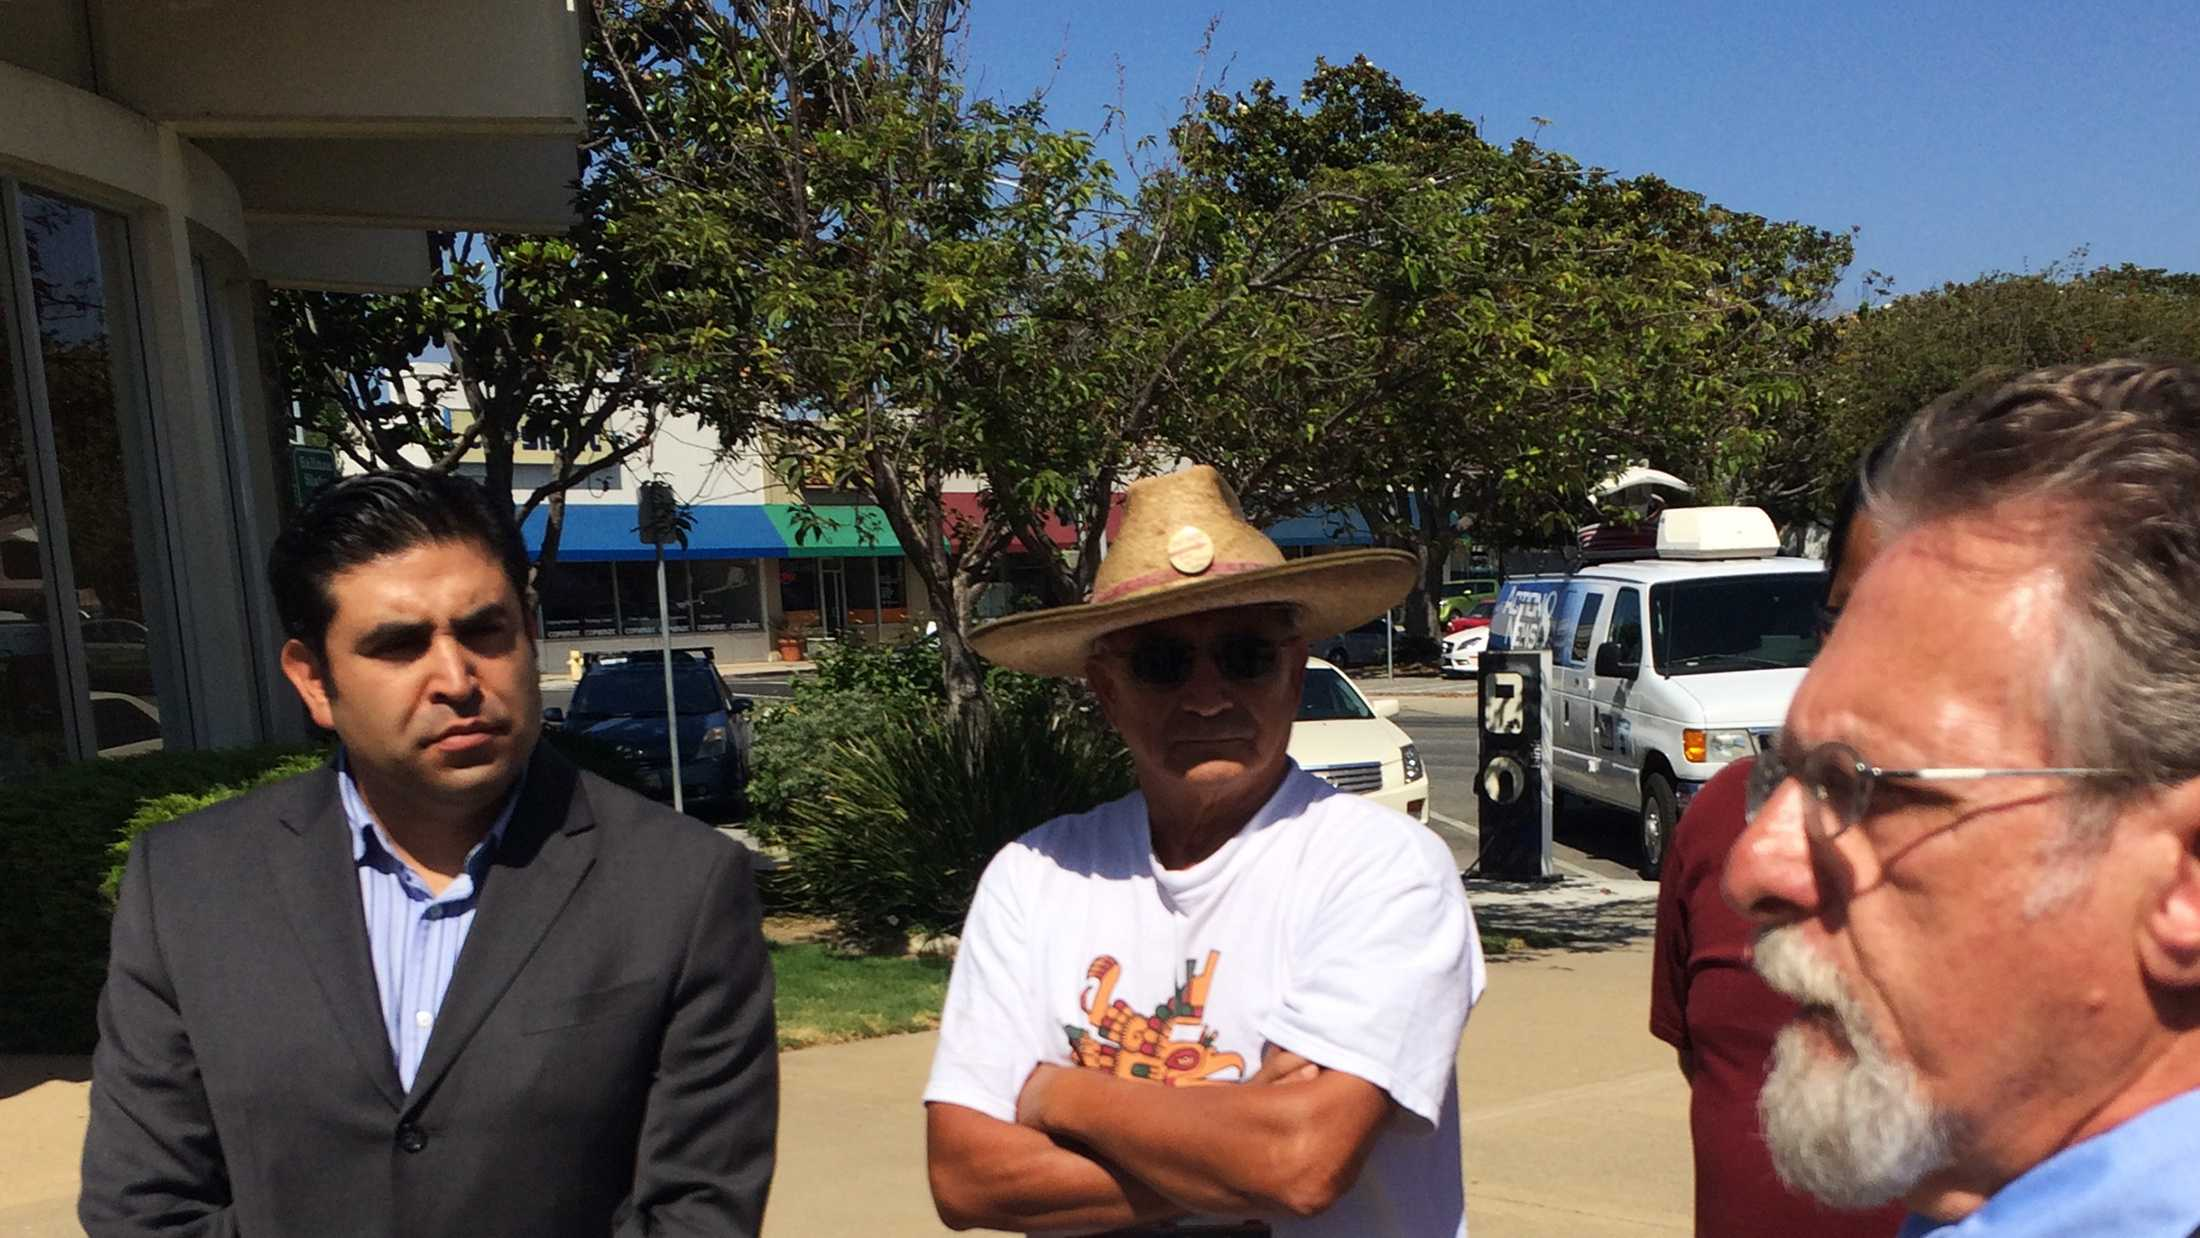 Jose Castaneda, left, and his lawyer, right.  (Sept. 1, 2015)